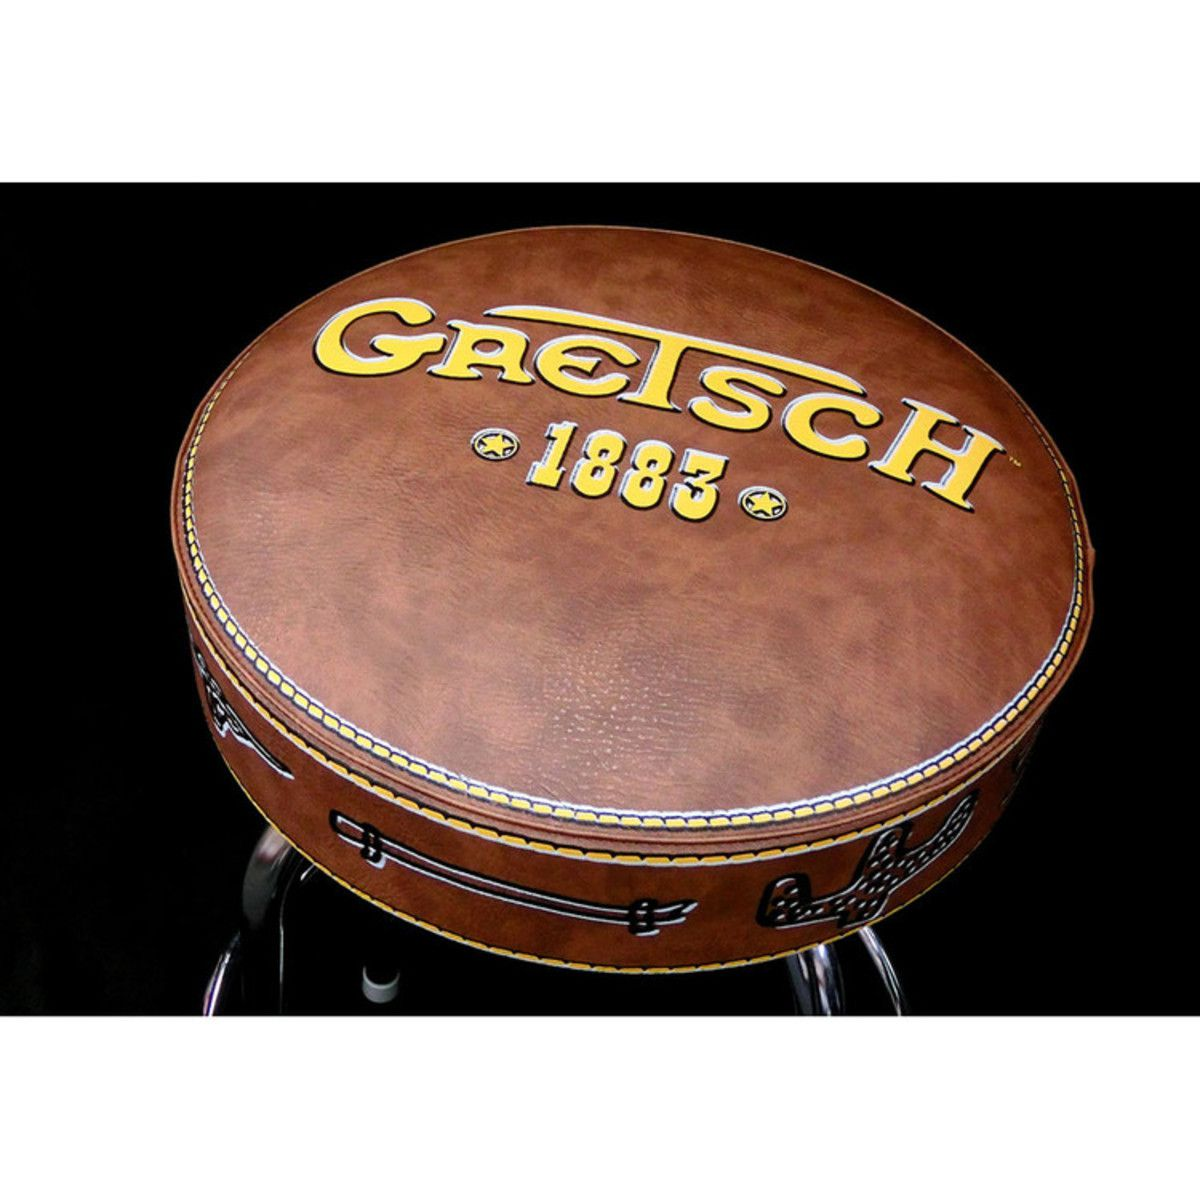 Banco Fender Barstool 24in Gretsch 1883